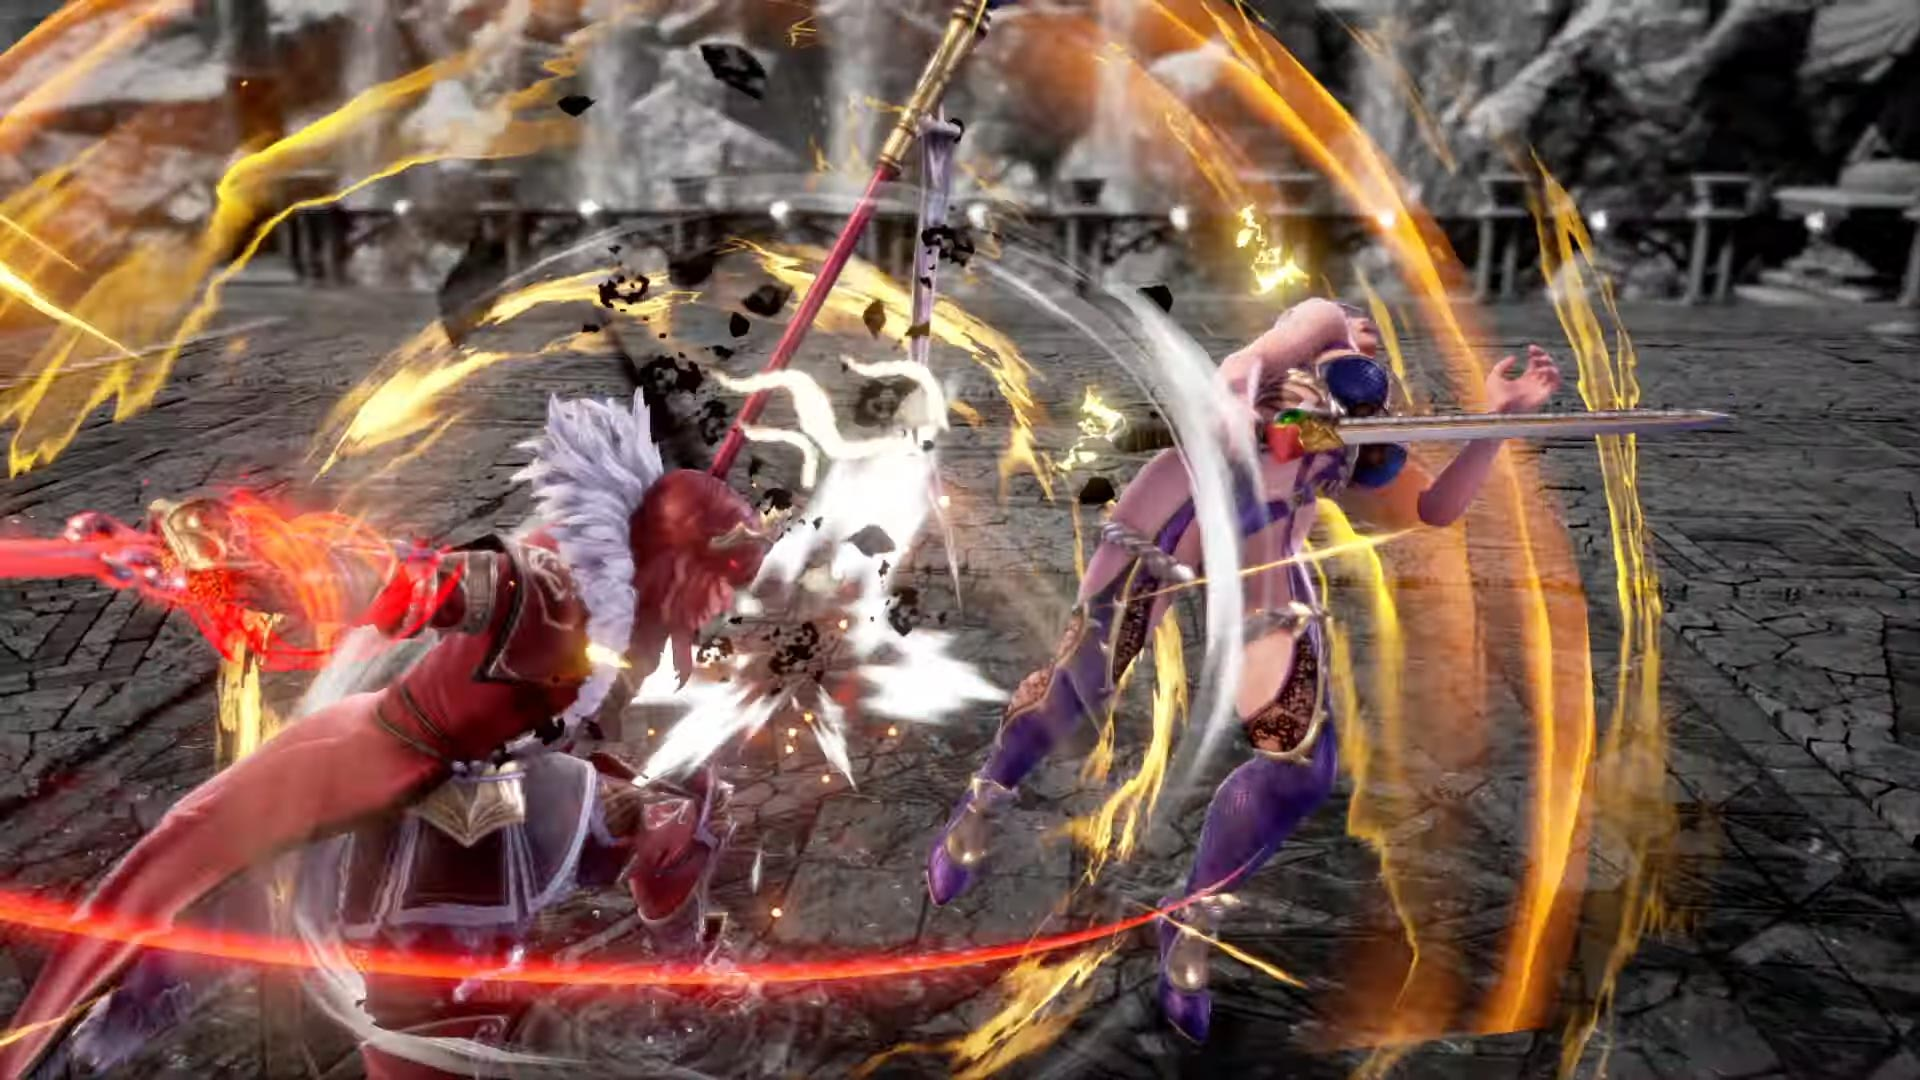 Soul Calibur 6 Hilde Reveal Trailer Gallery 4 out of 9 image gallery